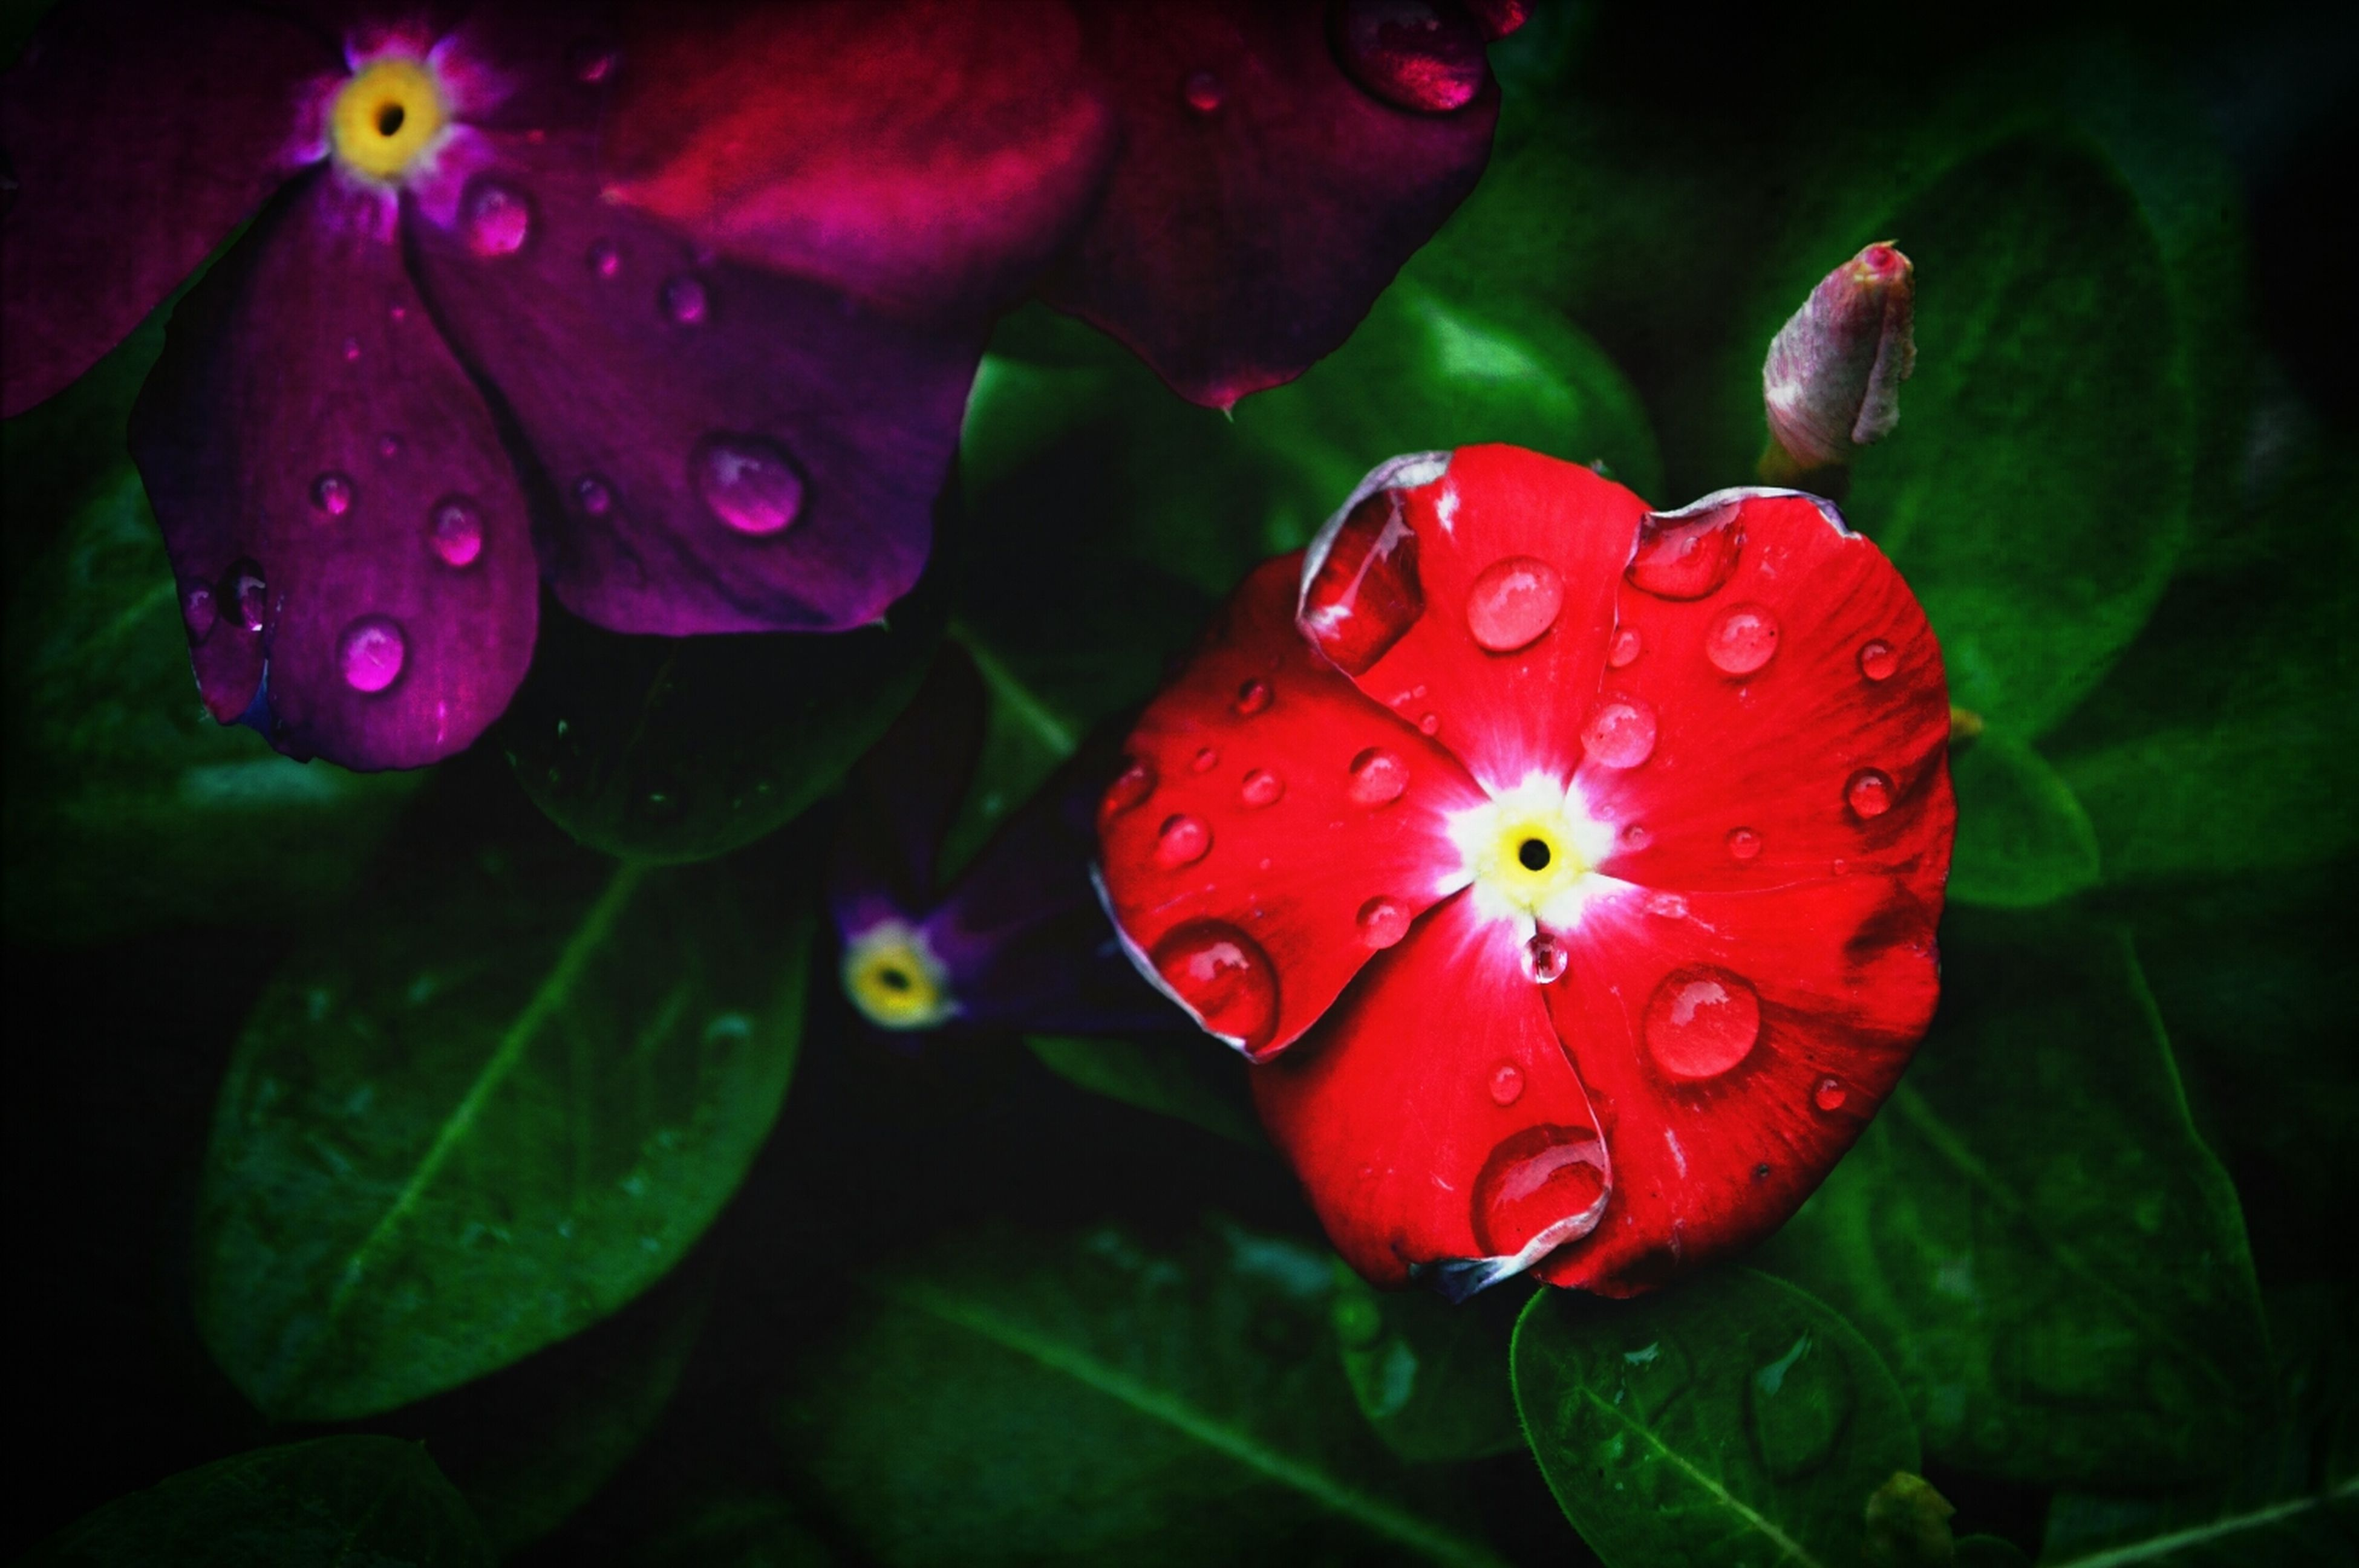 flower, freshness, petal, growth, fragility, red, beauty in nature, flower head, close-up, drop, water, plant, nature, leaf, blooming, pink color, wet, green color, bud, focus on foreground